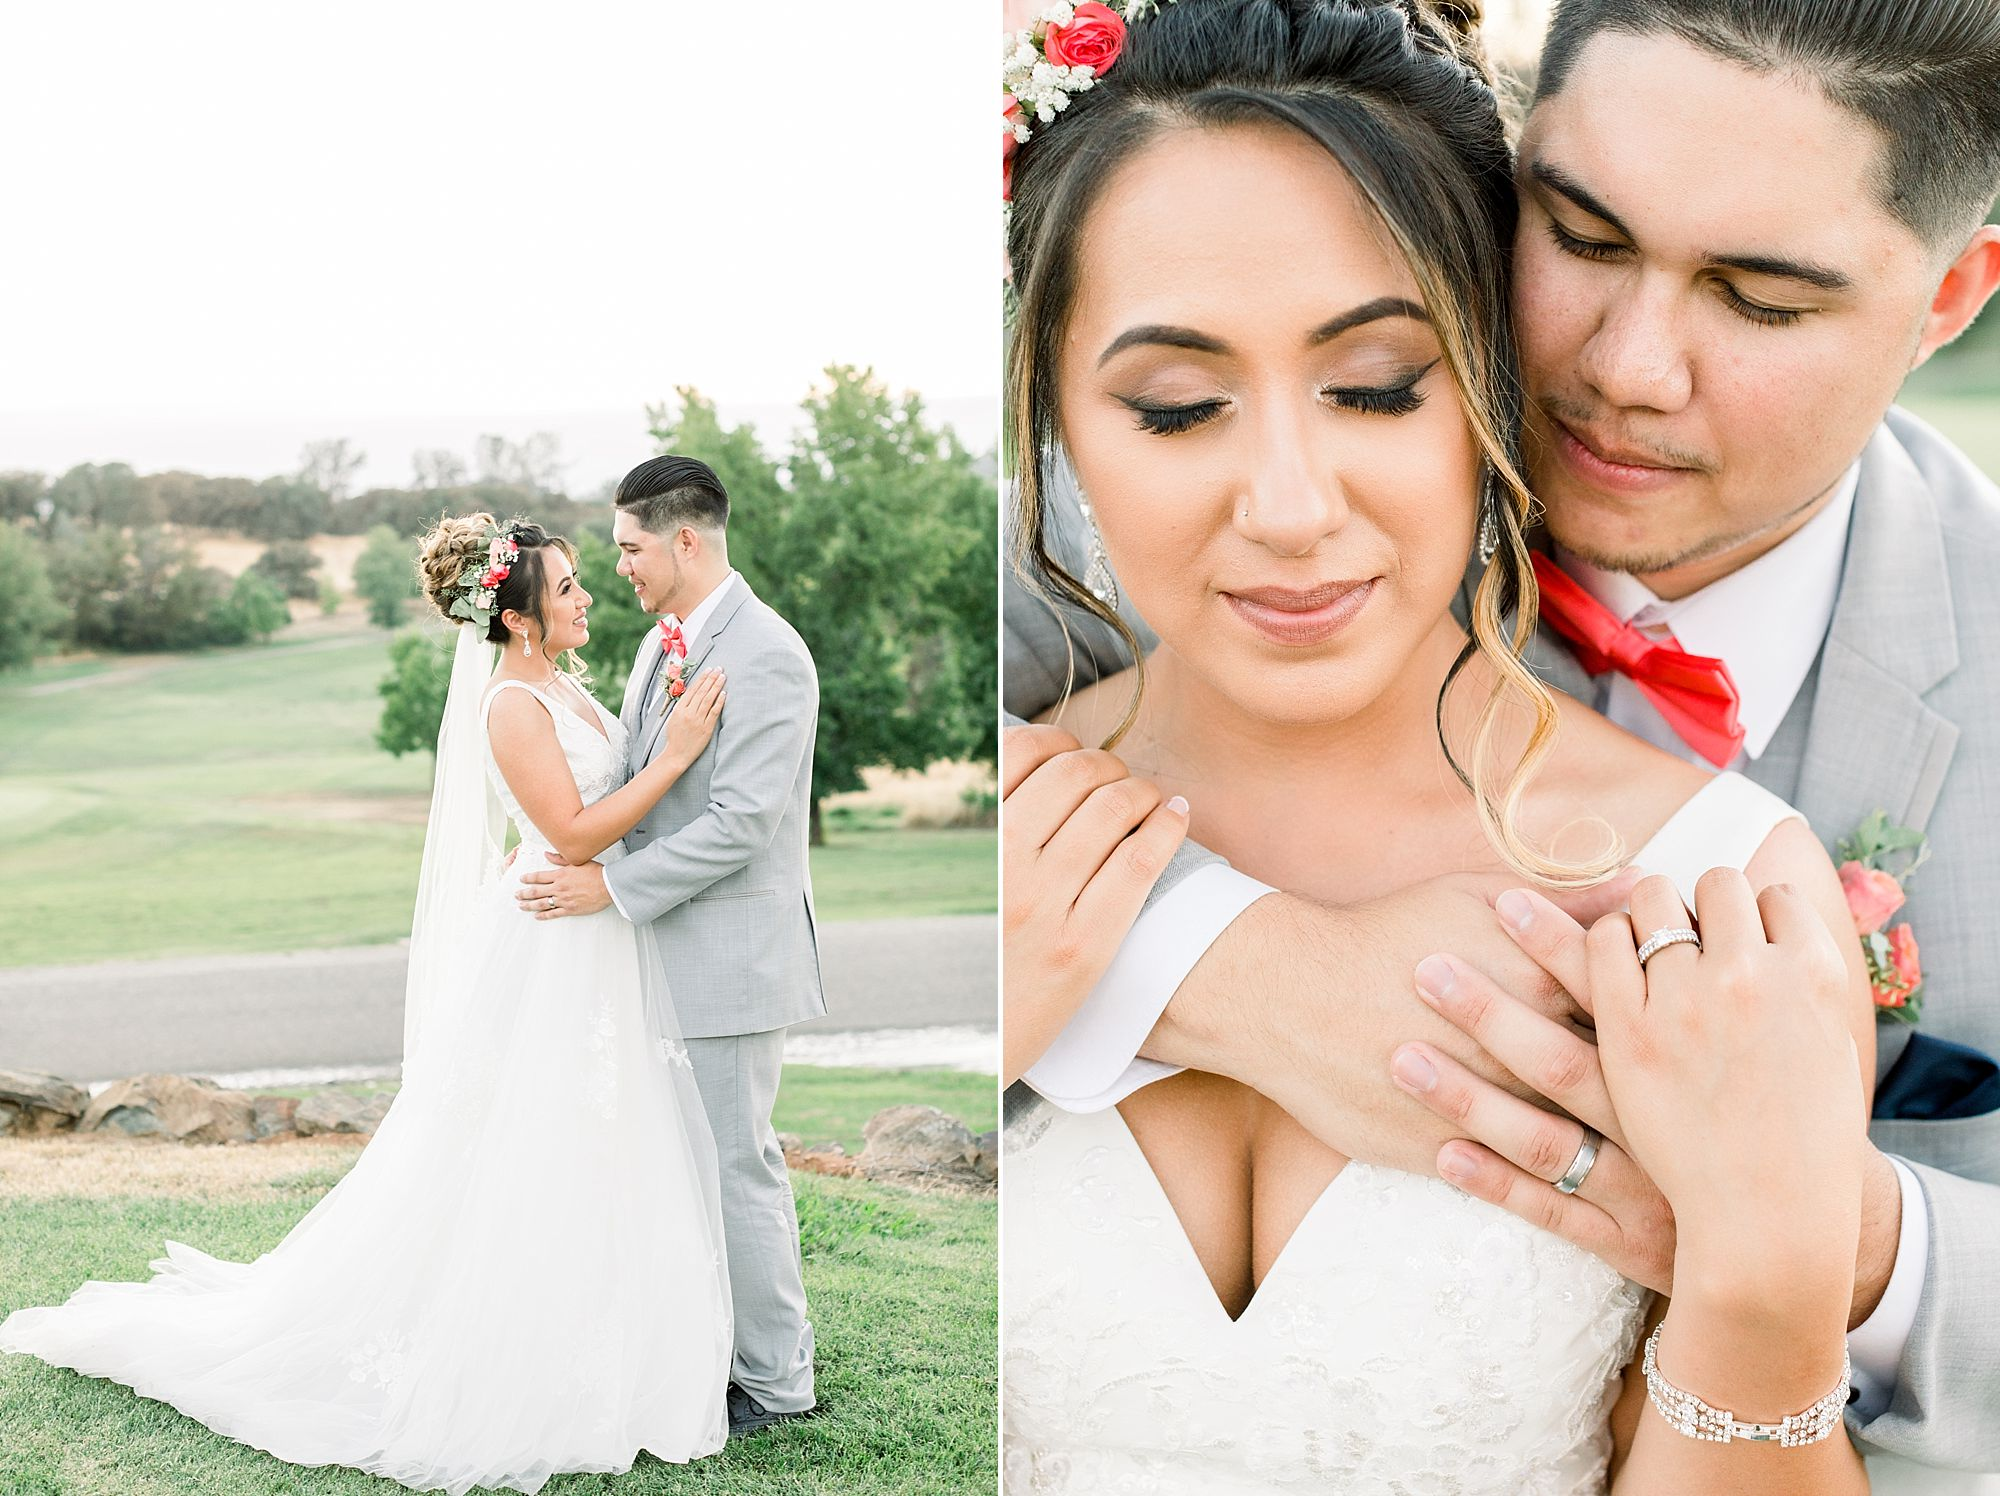 Auburn Valley Golf Club Wedding - Ashley Baumgartner - Auburn Wedding Photographer and Sacramento Wedding Photography_0045.jpg